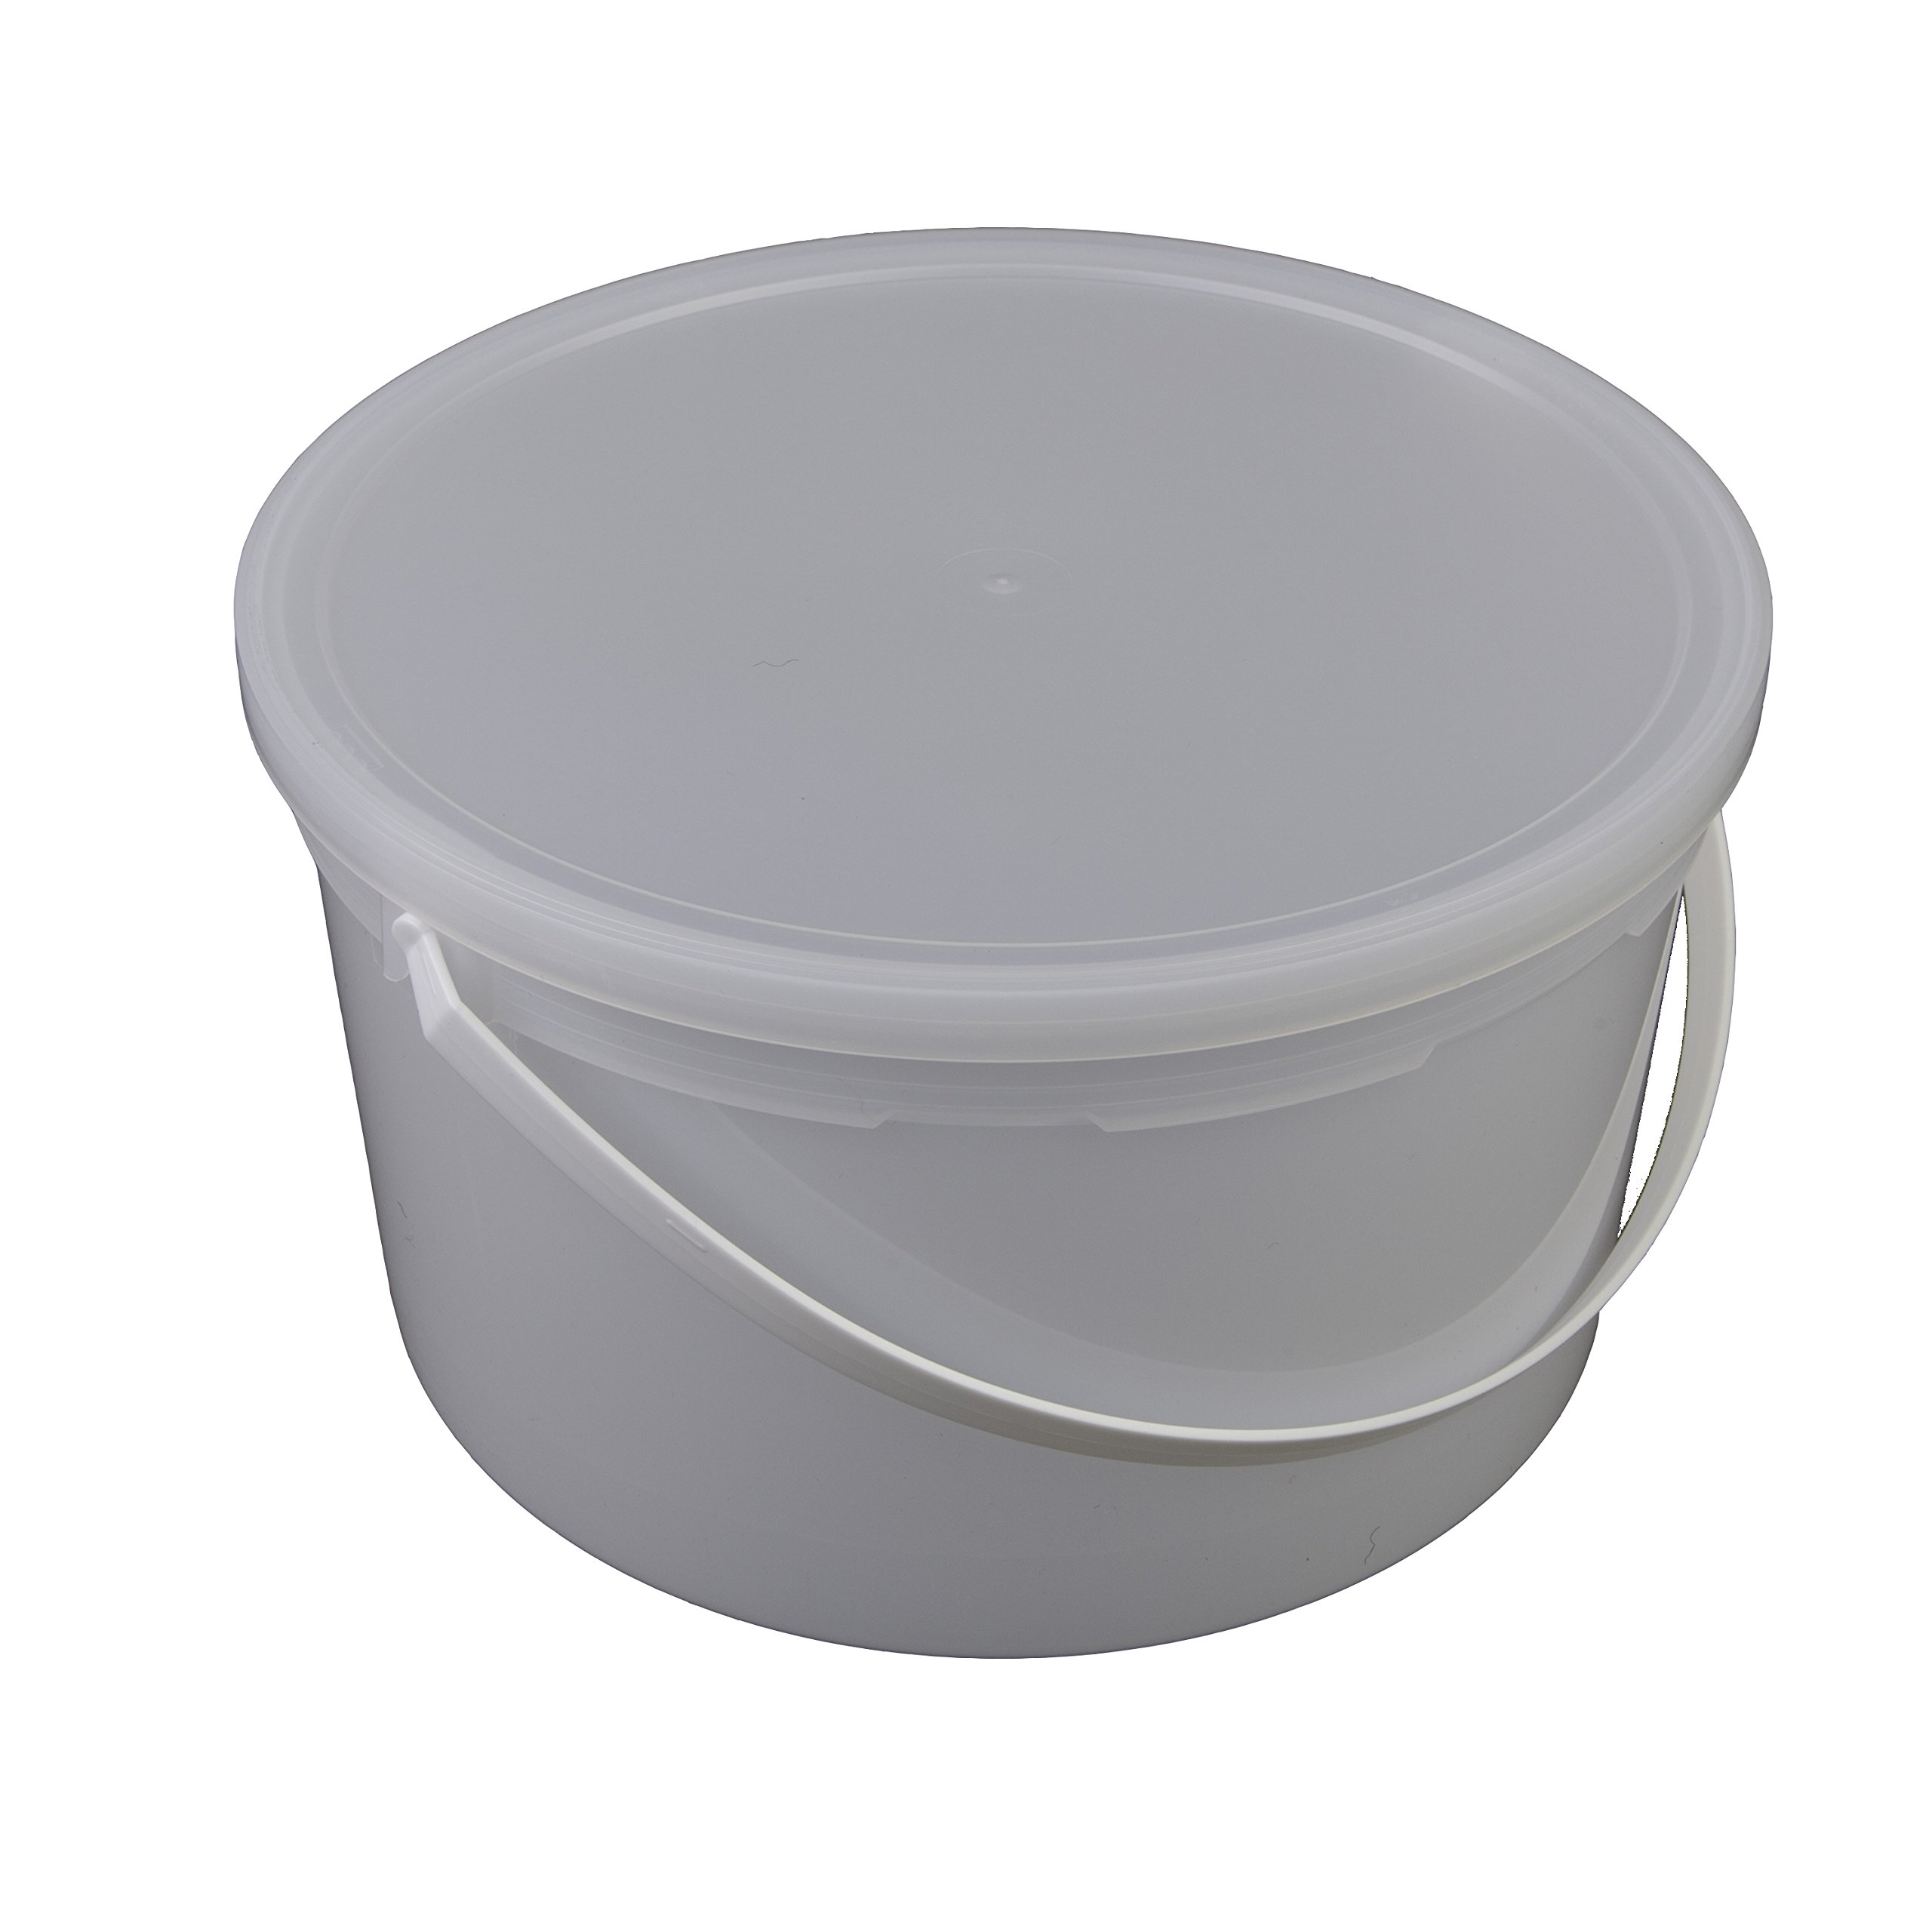 Consolidated Plastics Pail with Handle, HDPE, 4 Quart, Natural, 10 Piece